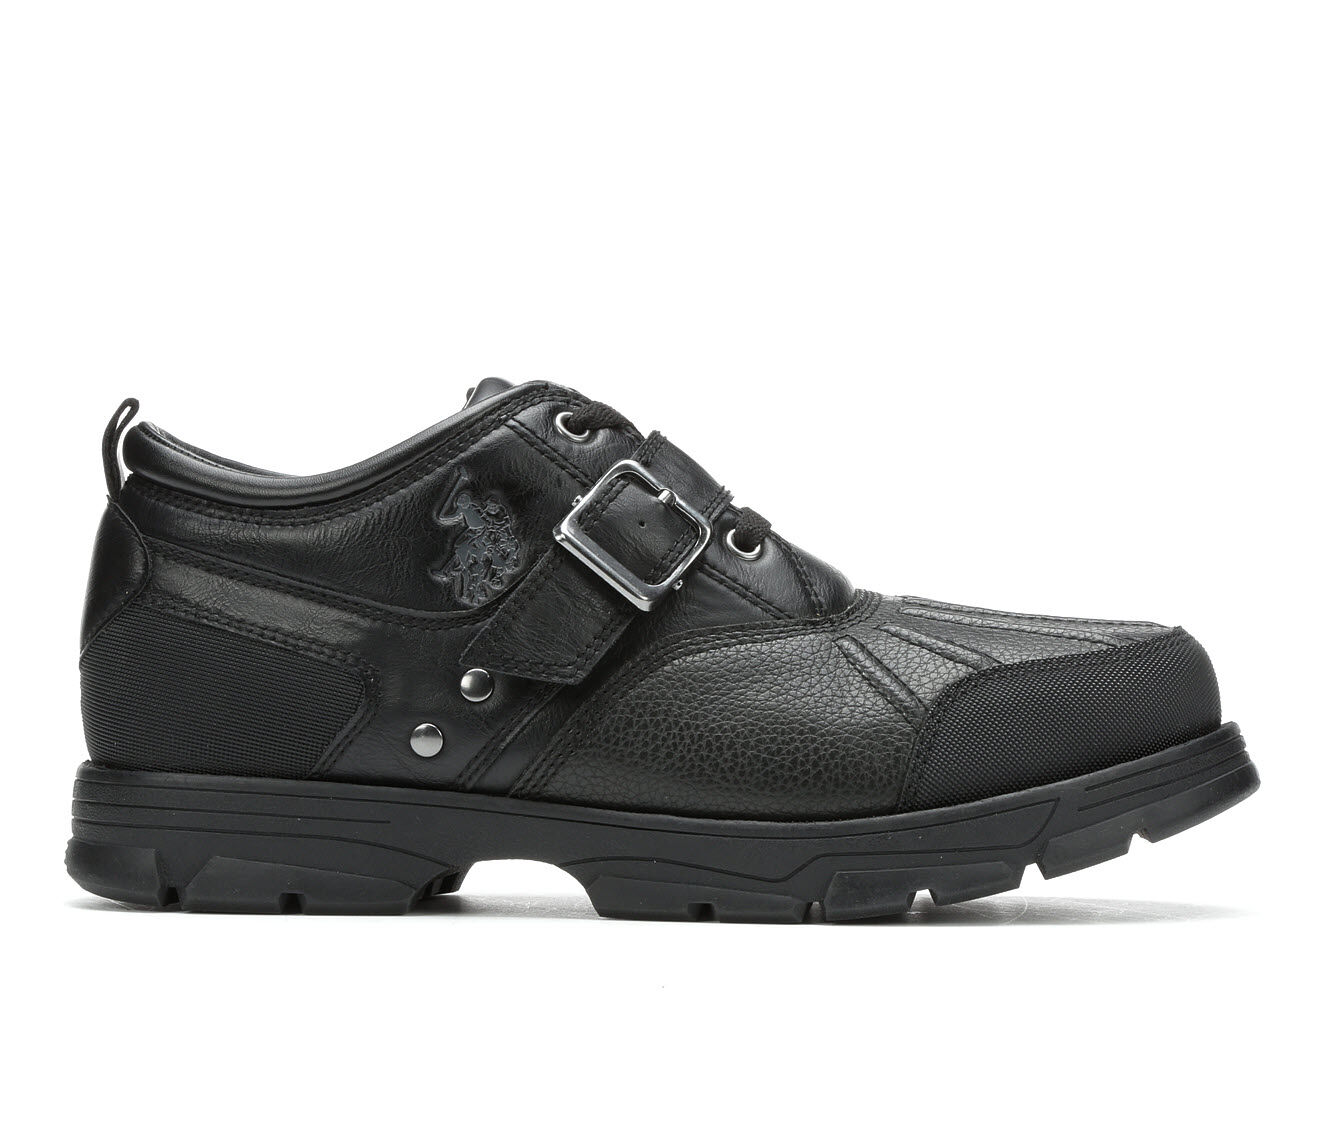 Hot Charm Men's US Polo Assn Clancy II Boots Black